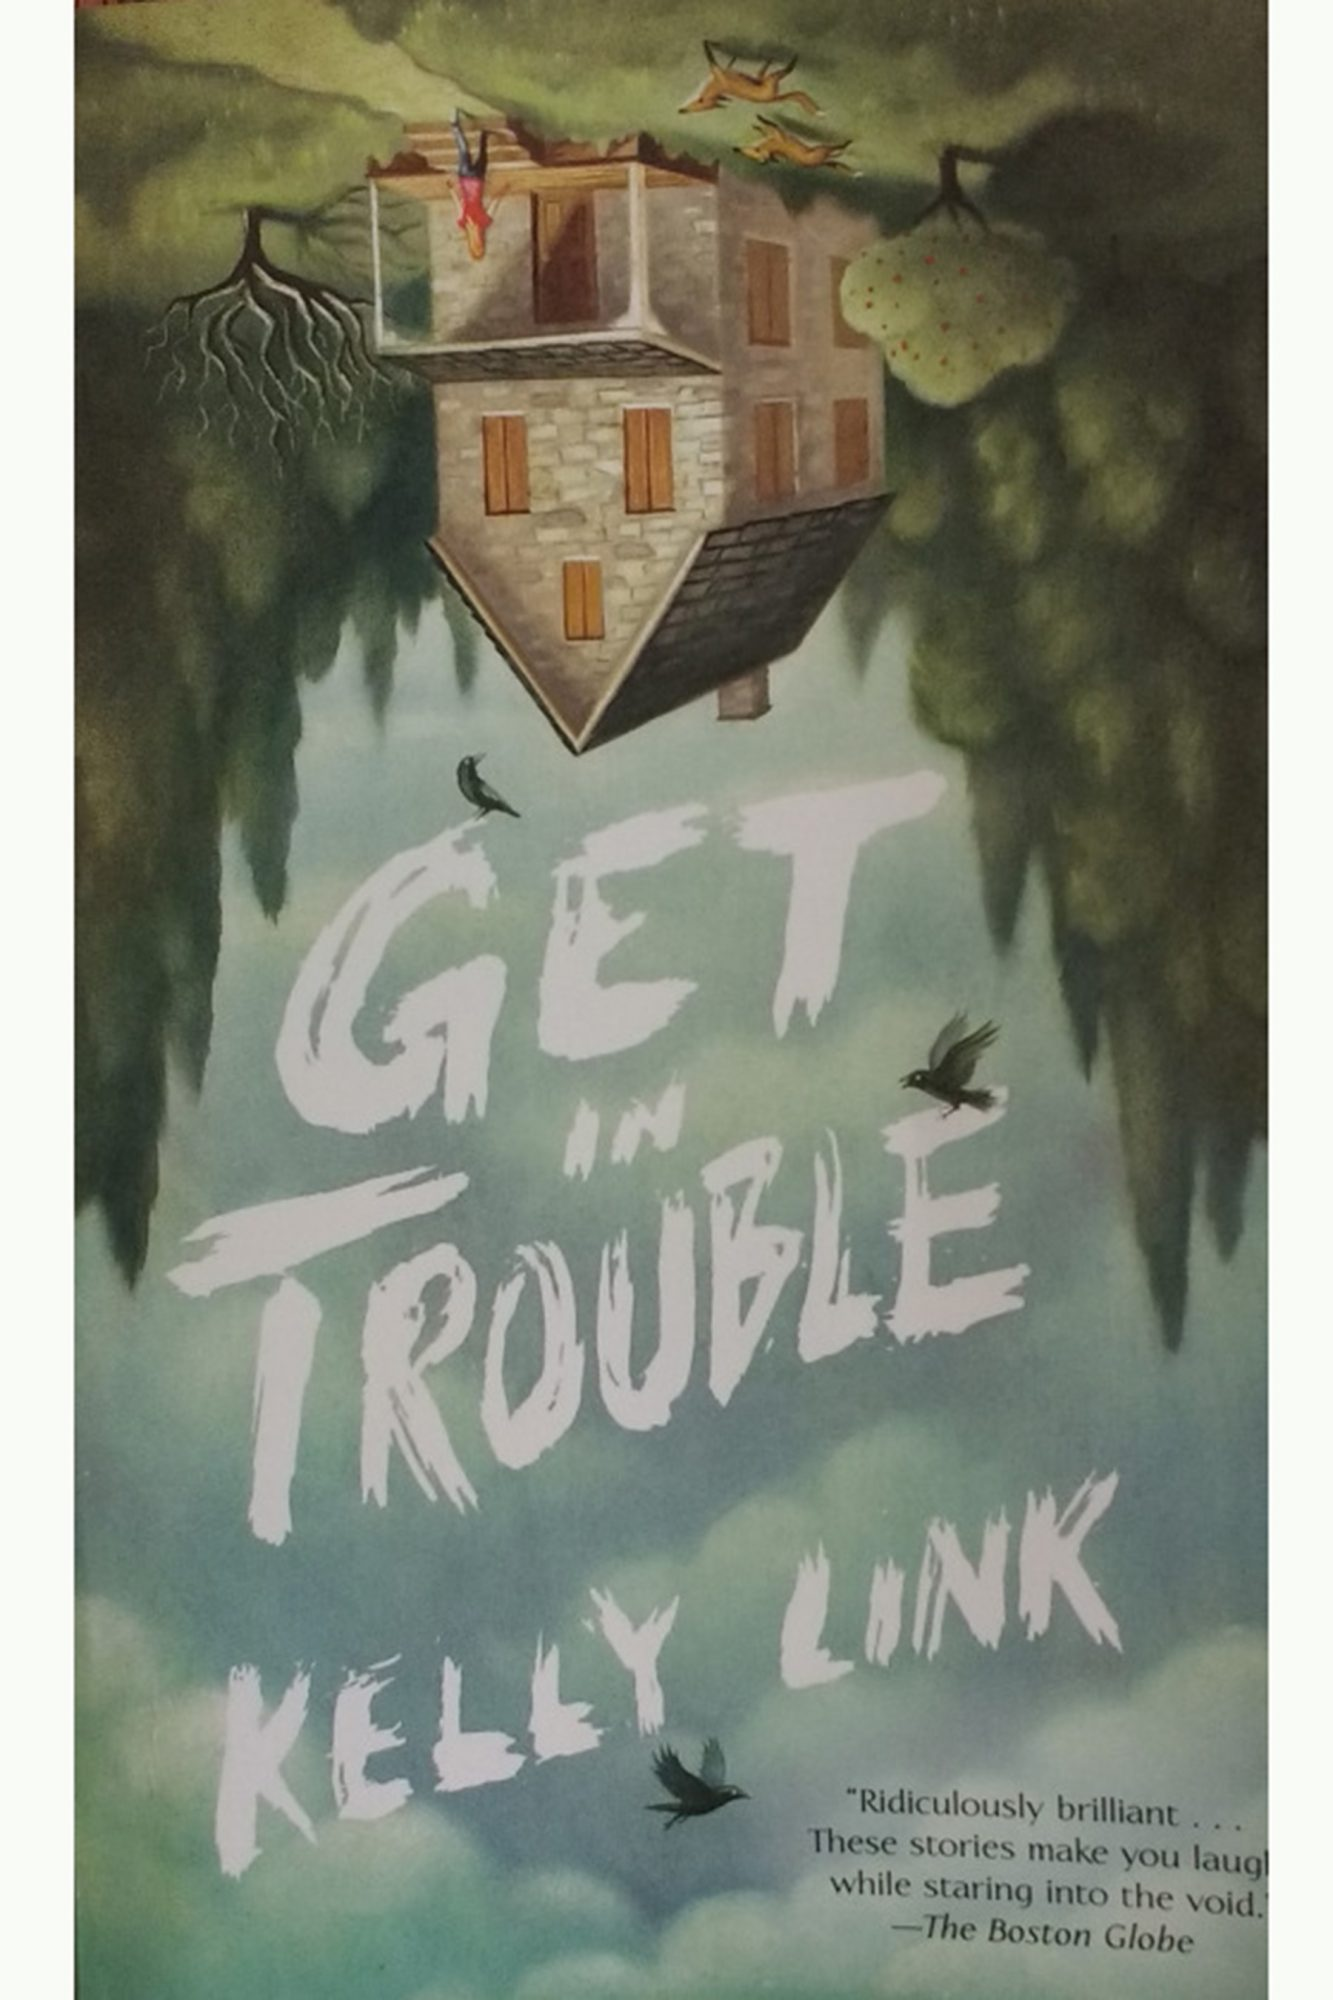 Get-in-Trouble-Kelly-Link